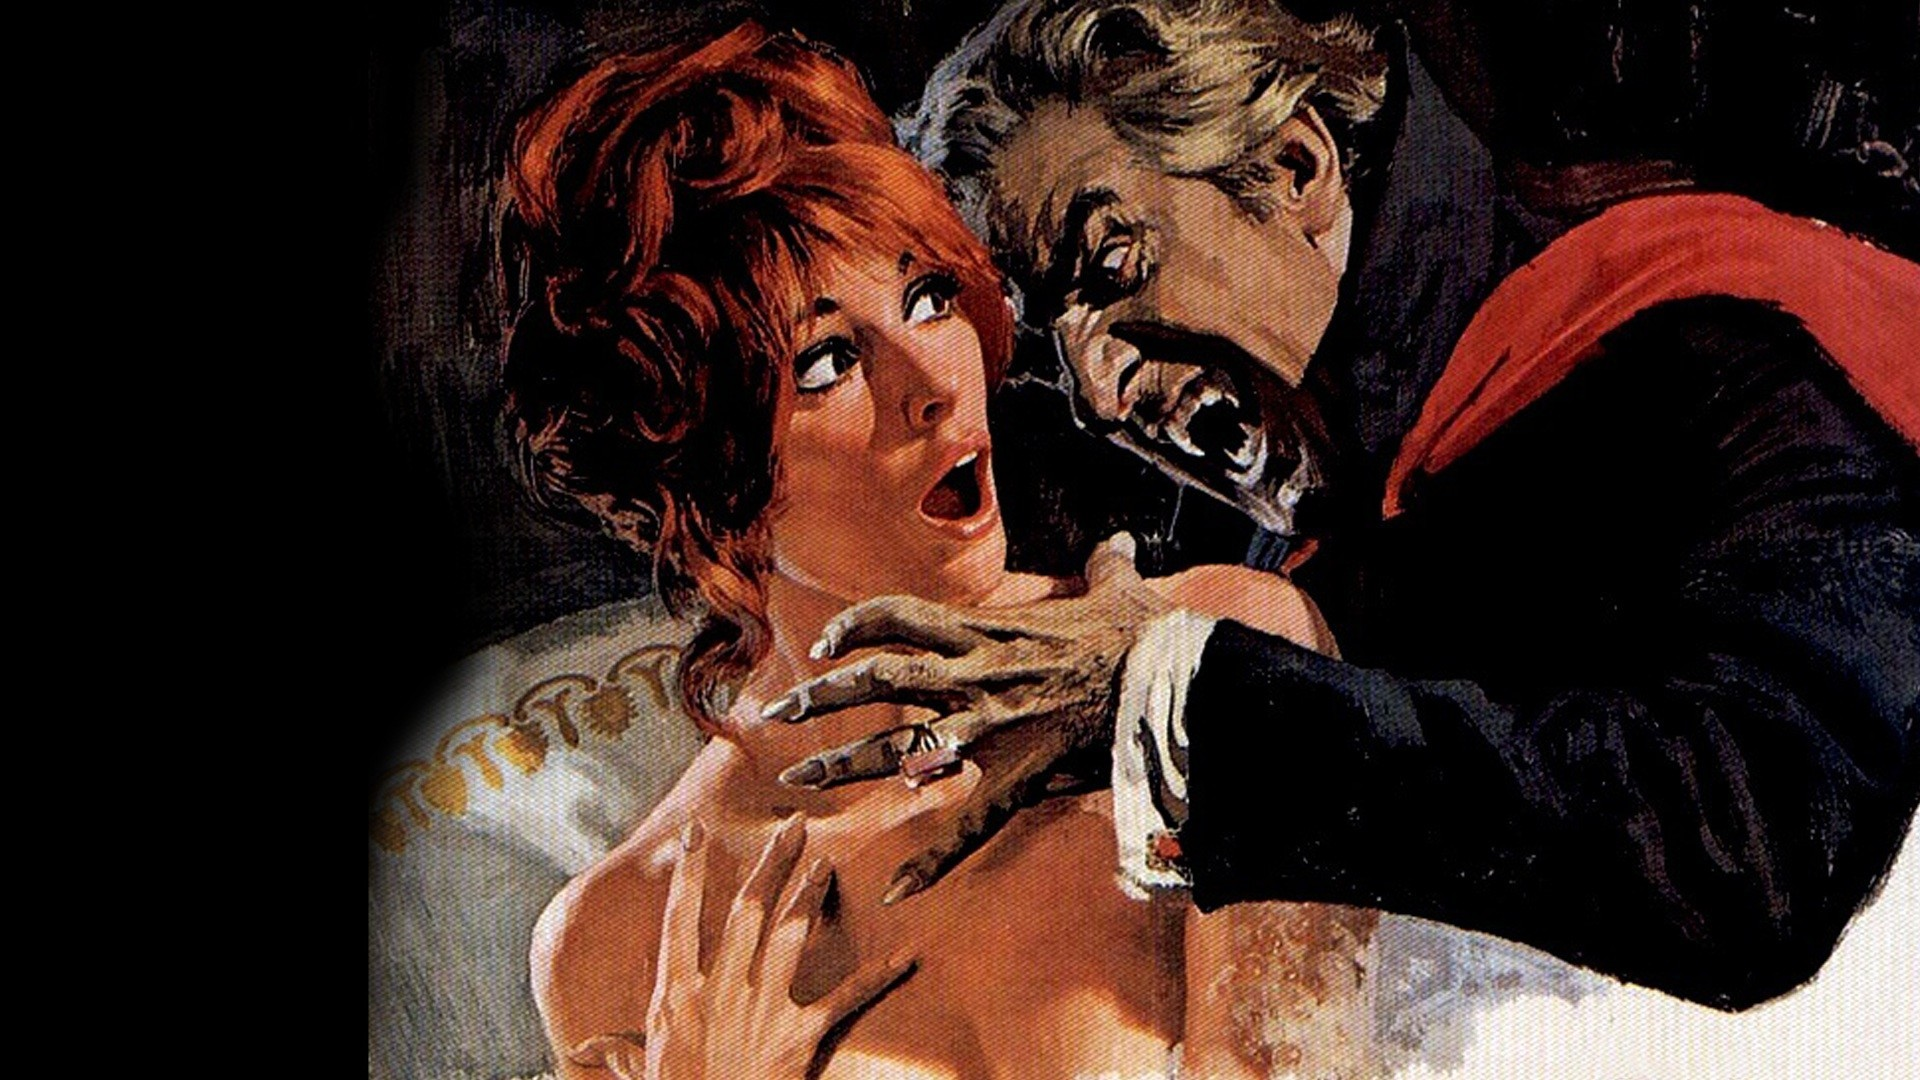 Movies From Mars: The Fearless Vampire Killers (1967)